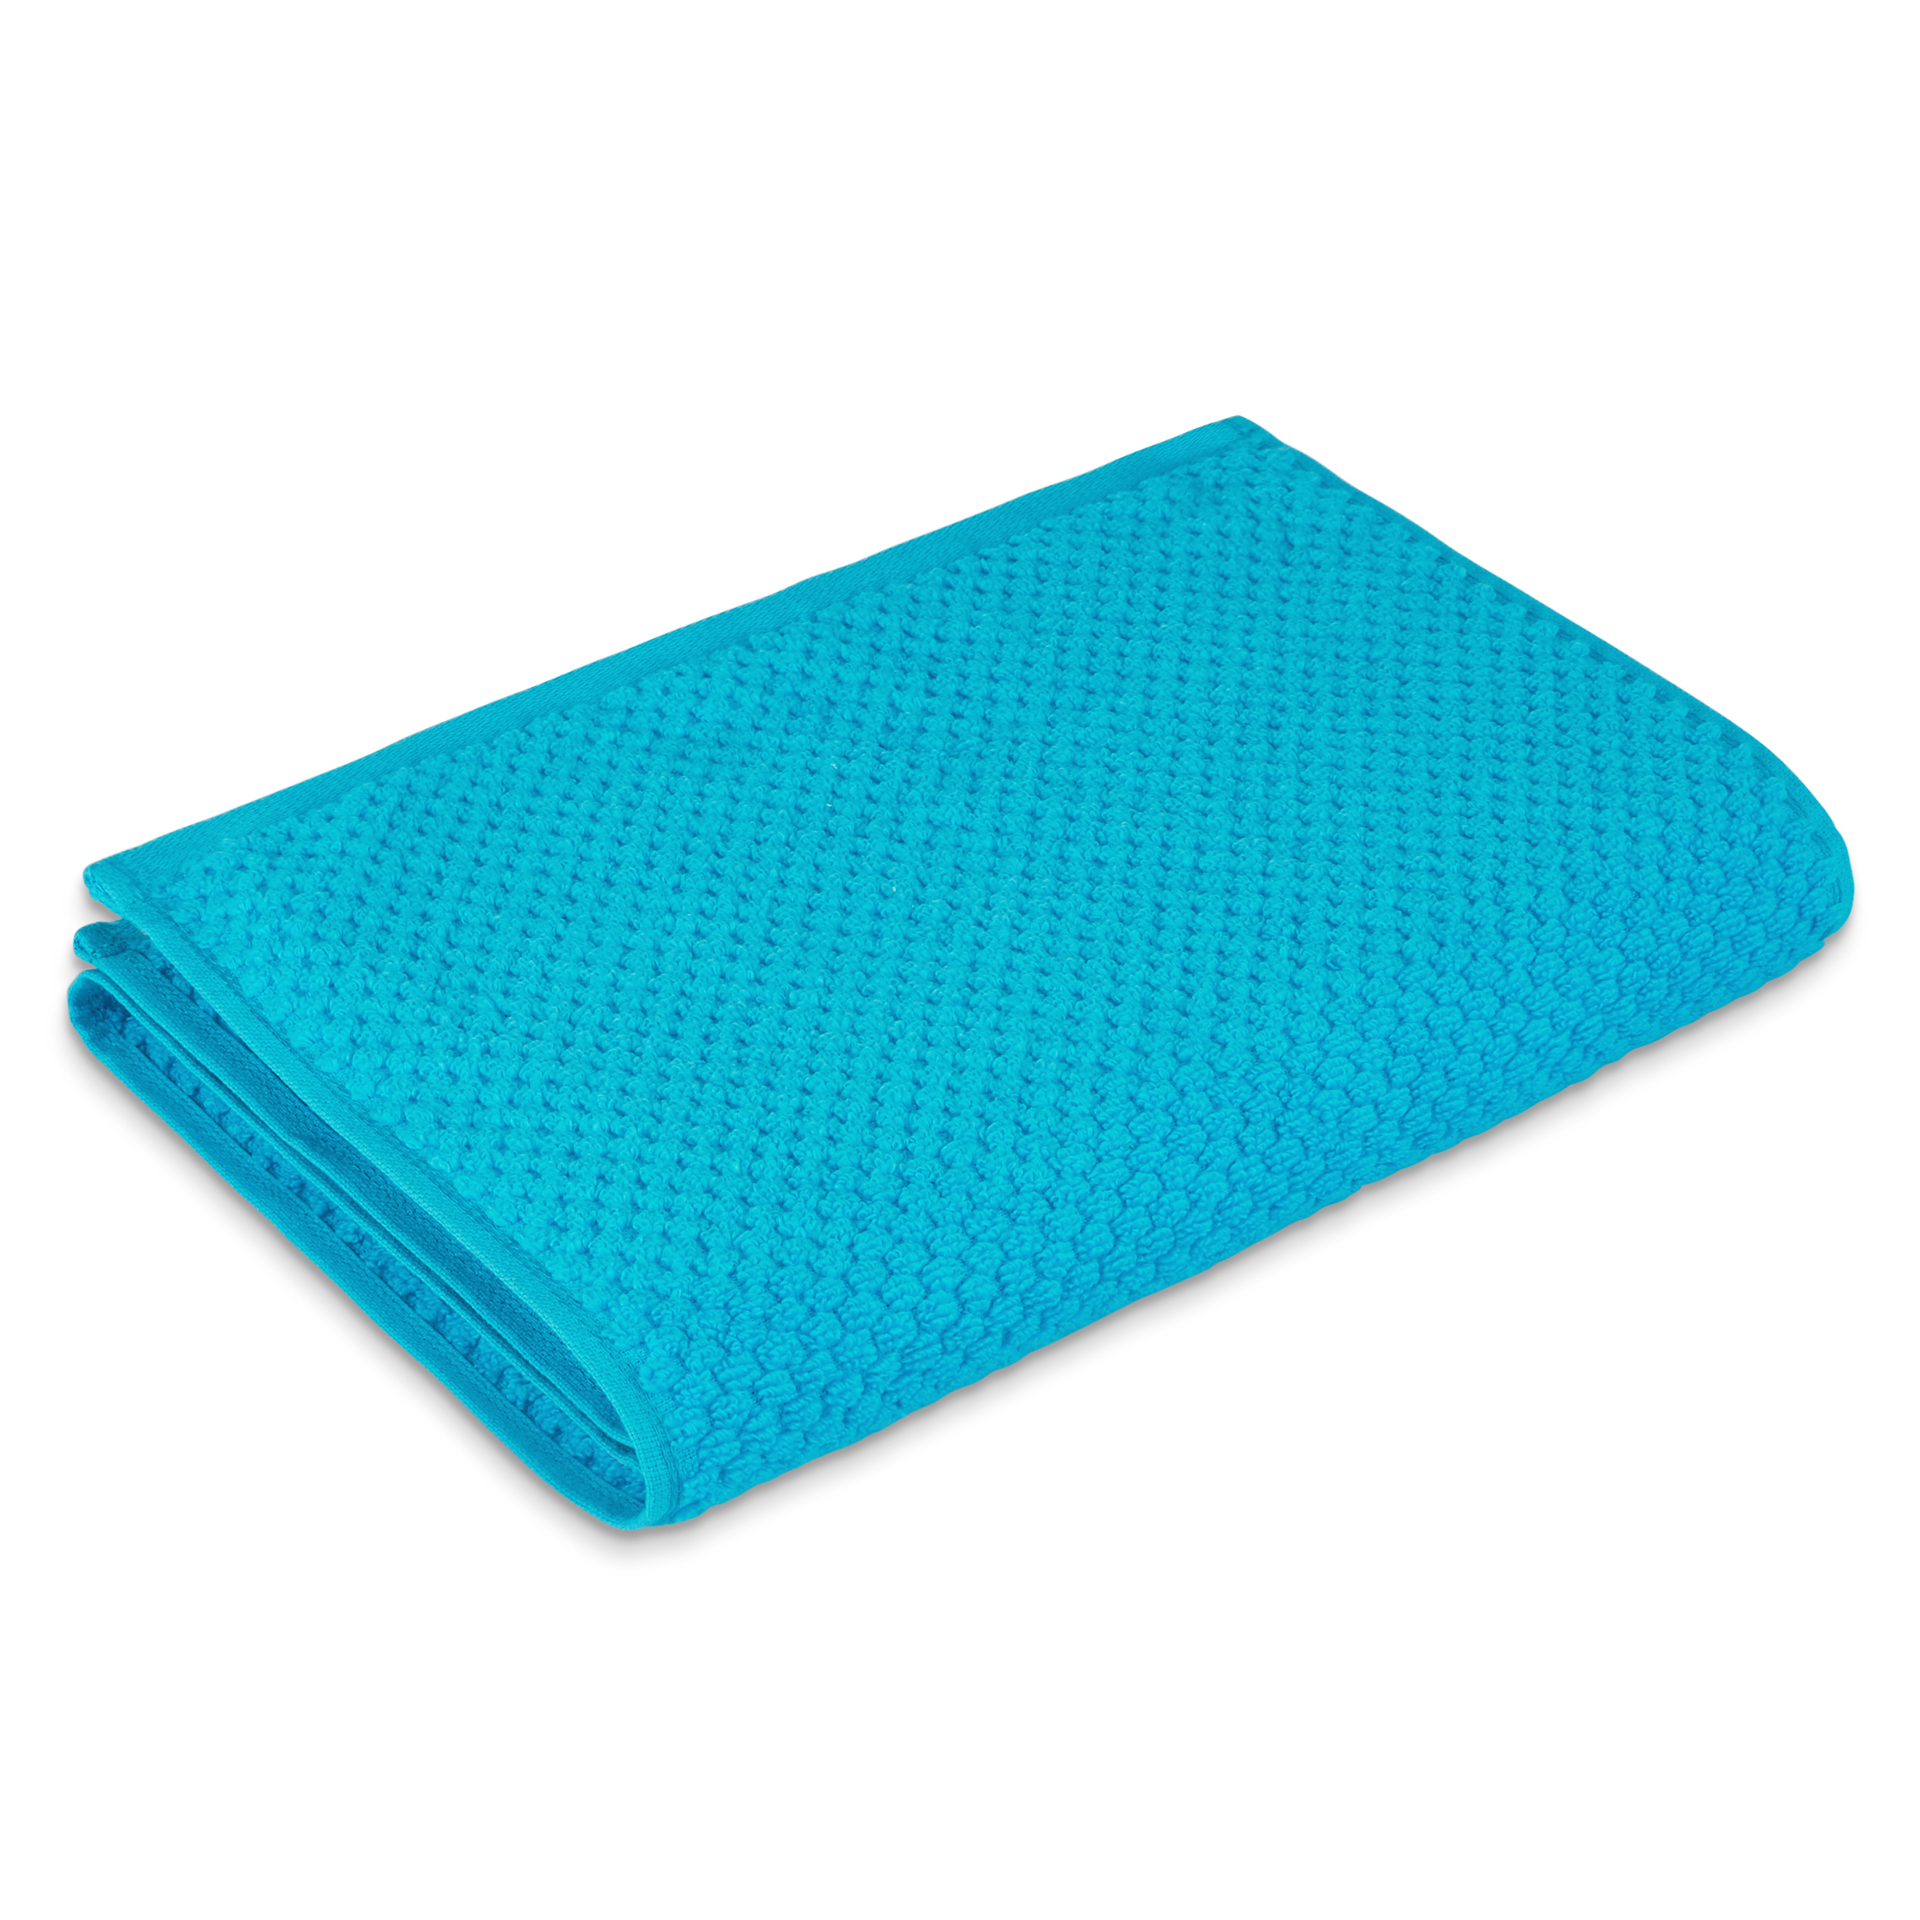 Spaces Essentials 1 Cotton Gsm Blue 1 Gym Cotton Towel Sets in Blue Colour by Spaces